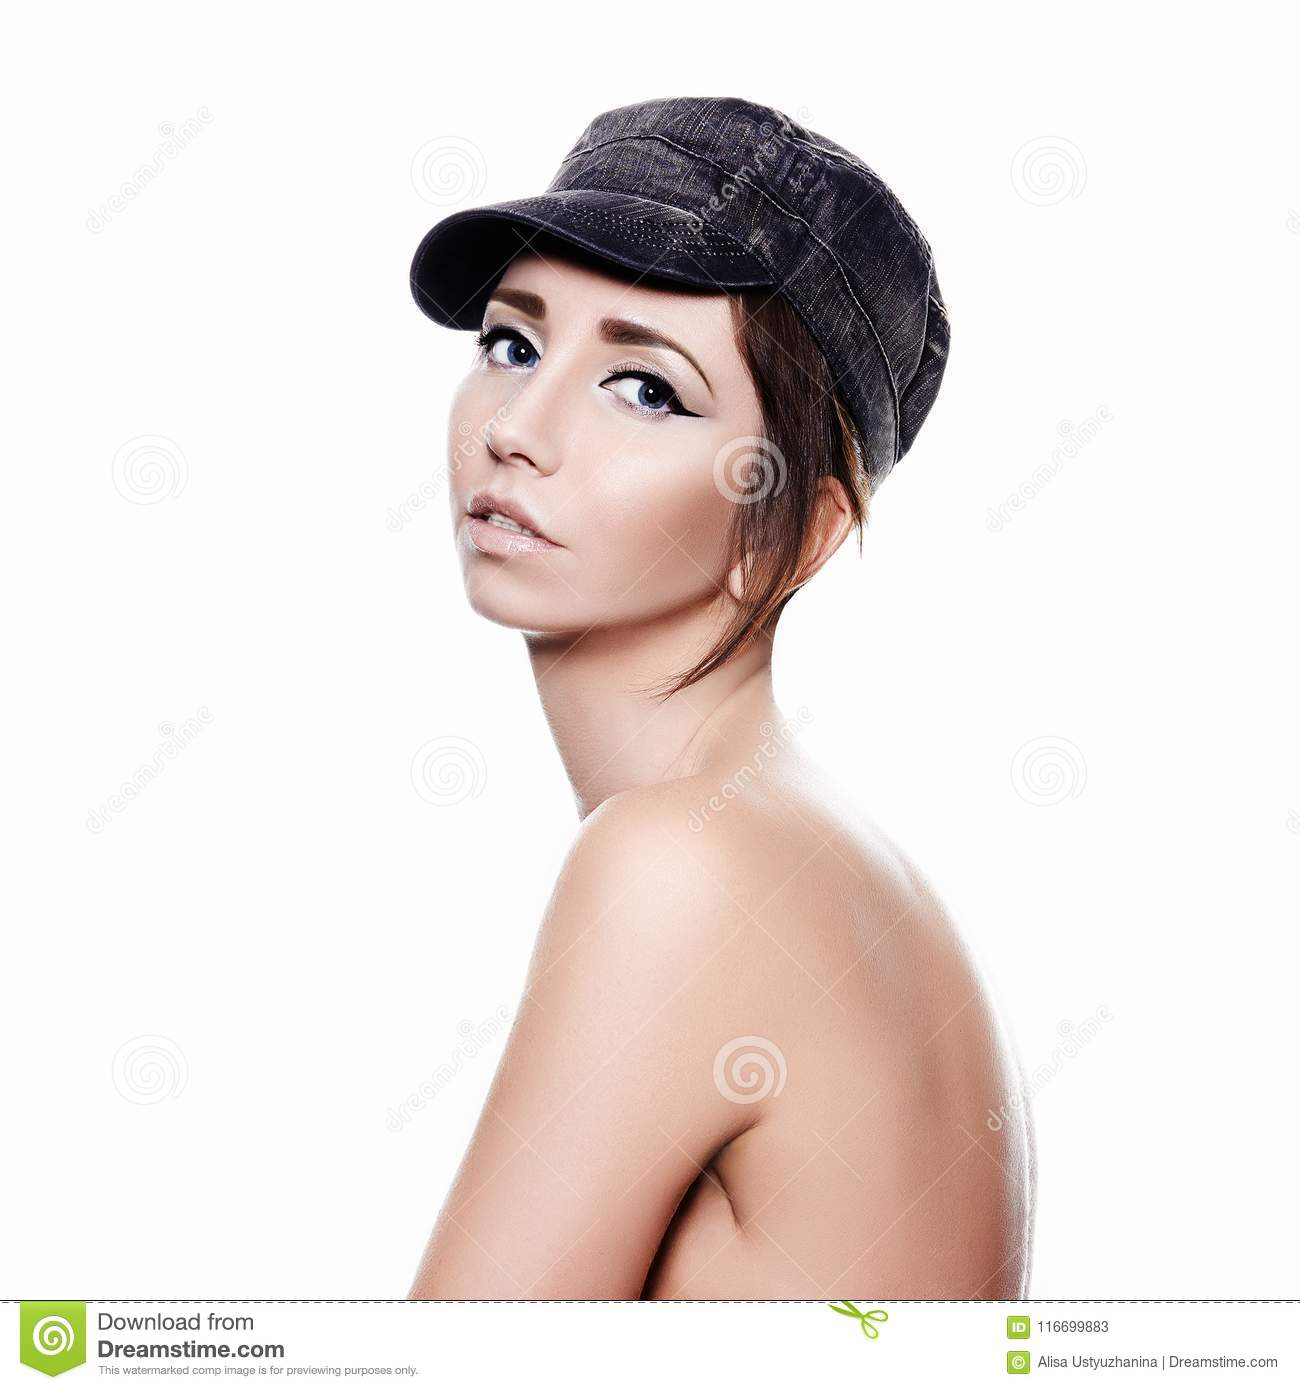 Naked Girl In Cap Beauty Make Up Sensual Woman Isolate Portrait